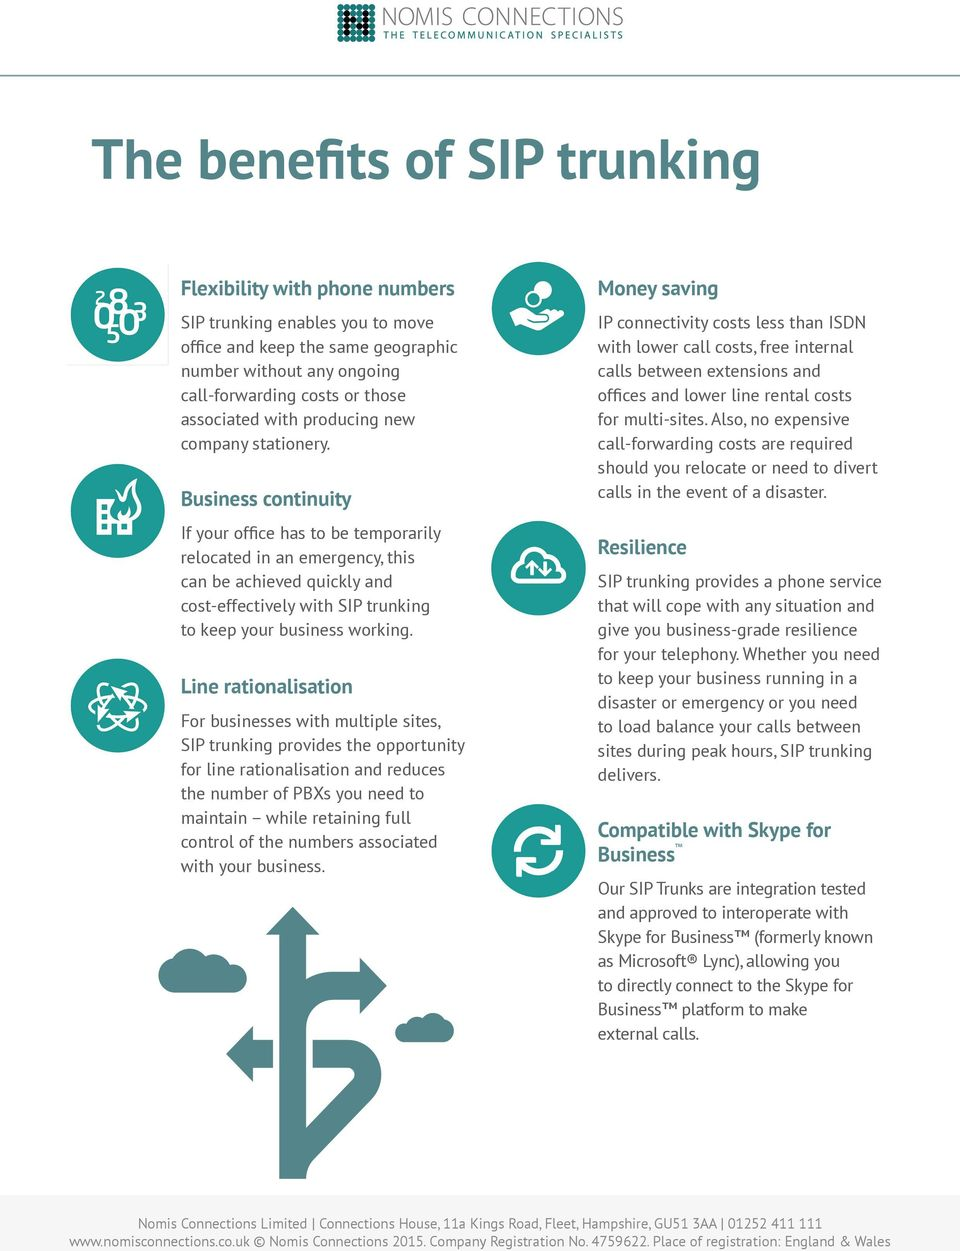 Business continuity If your office has to be temporarily relocated in an emergency, this can be achieved quickly and cost-effectively with SIP trunking to keep your business working.